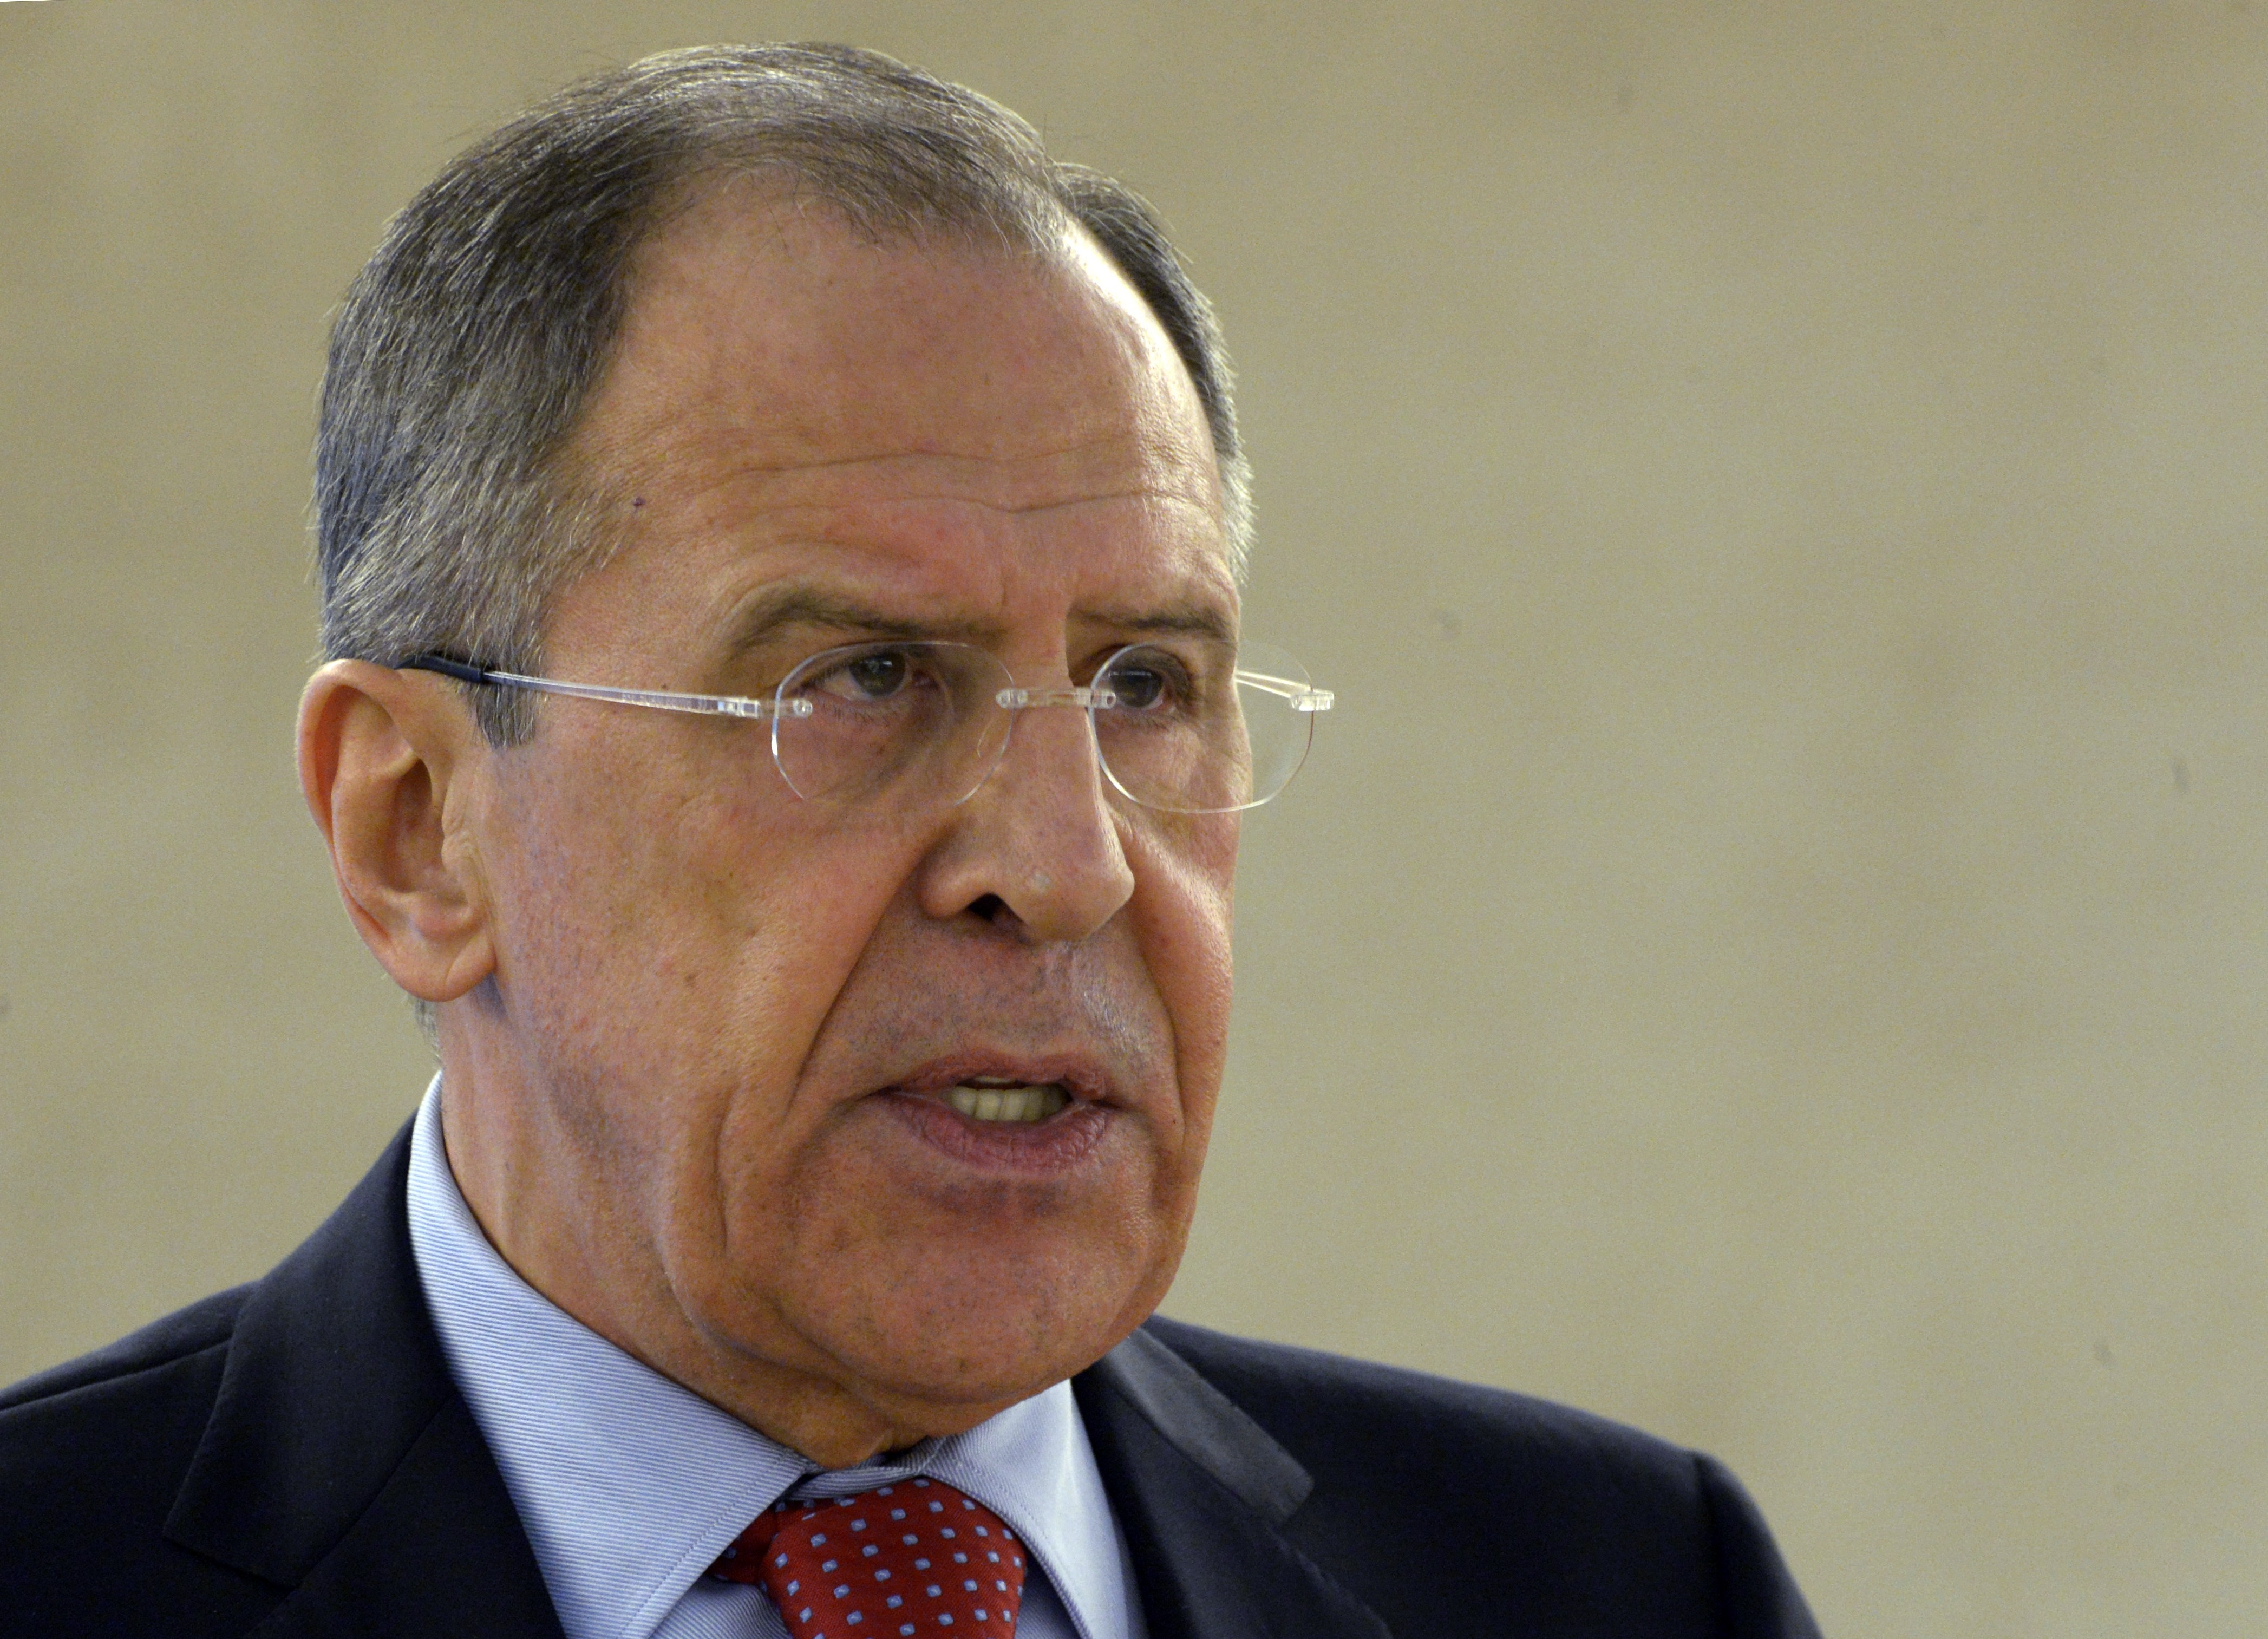 Russian Foreign Minister Sergei Lavrov says Russia is only protecting its interests on the Crimean peninsula.